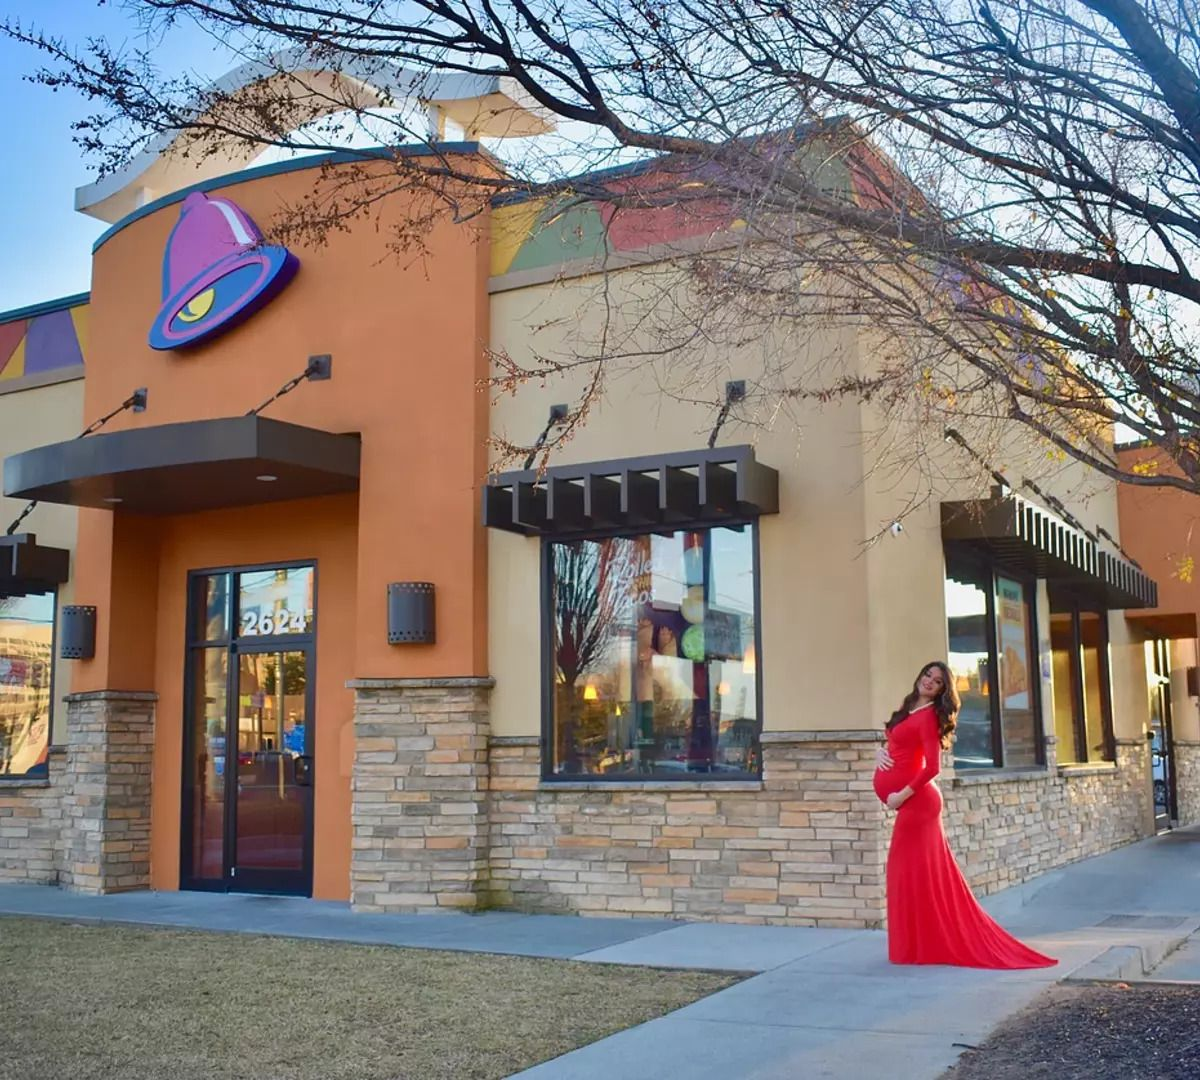 Kristin Johnston found that a photoshoot at Taco Bell captures her in her natural state